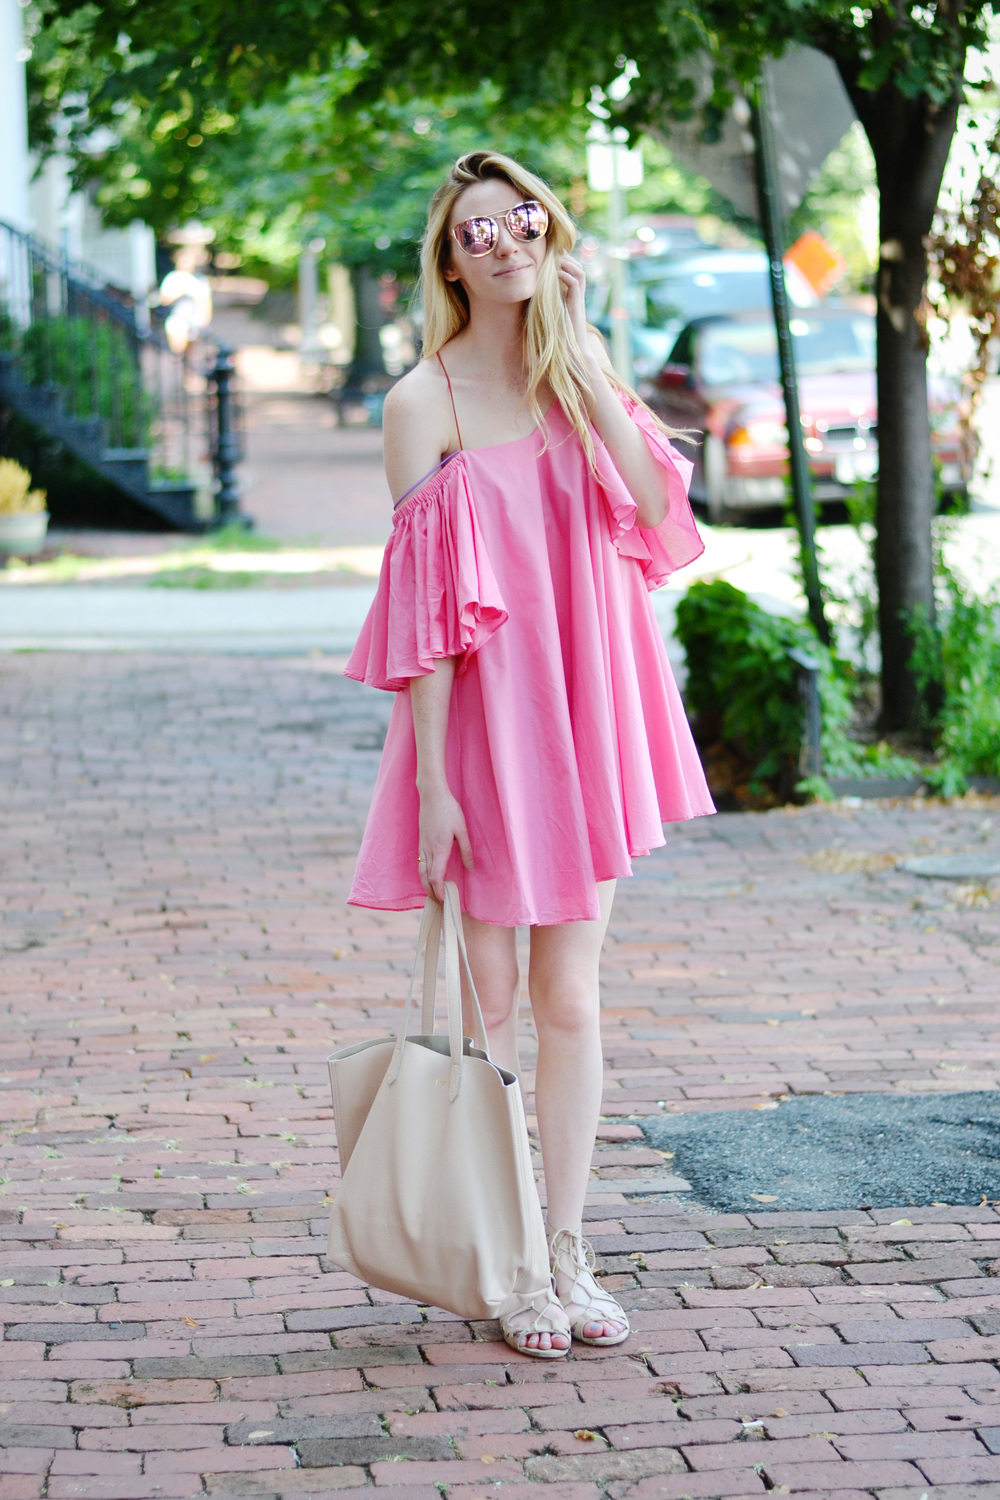 Voluminous Bright Pink Blogger Dress (via Chic Now)